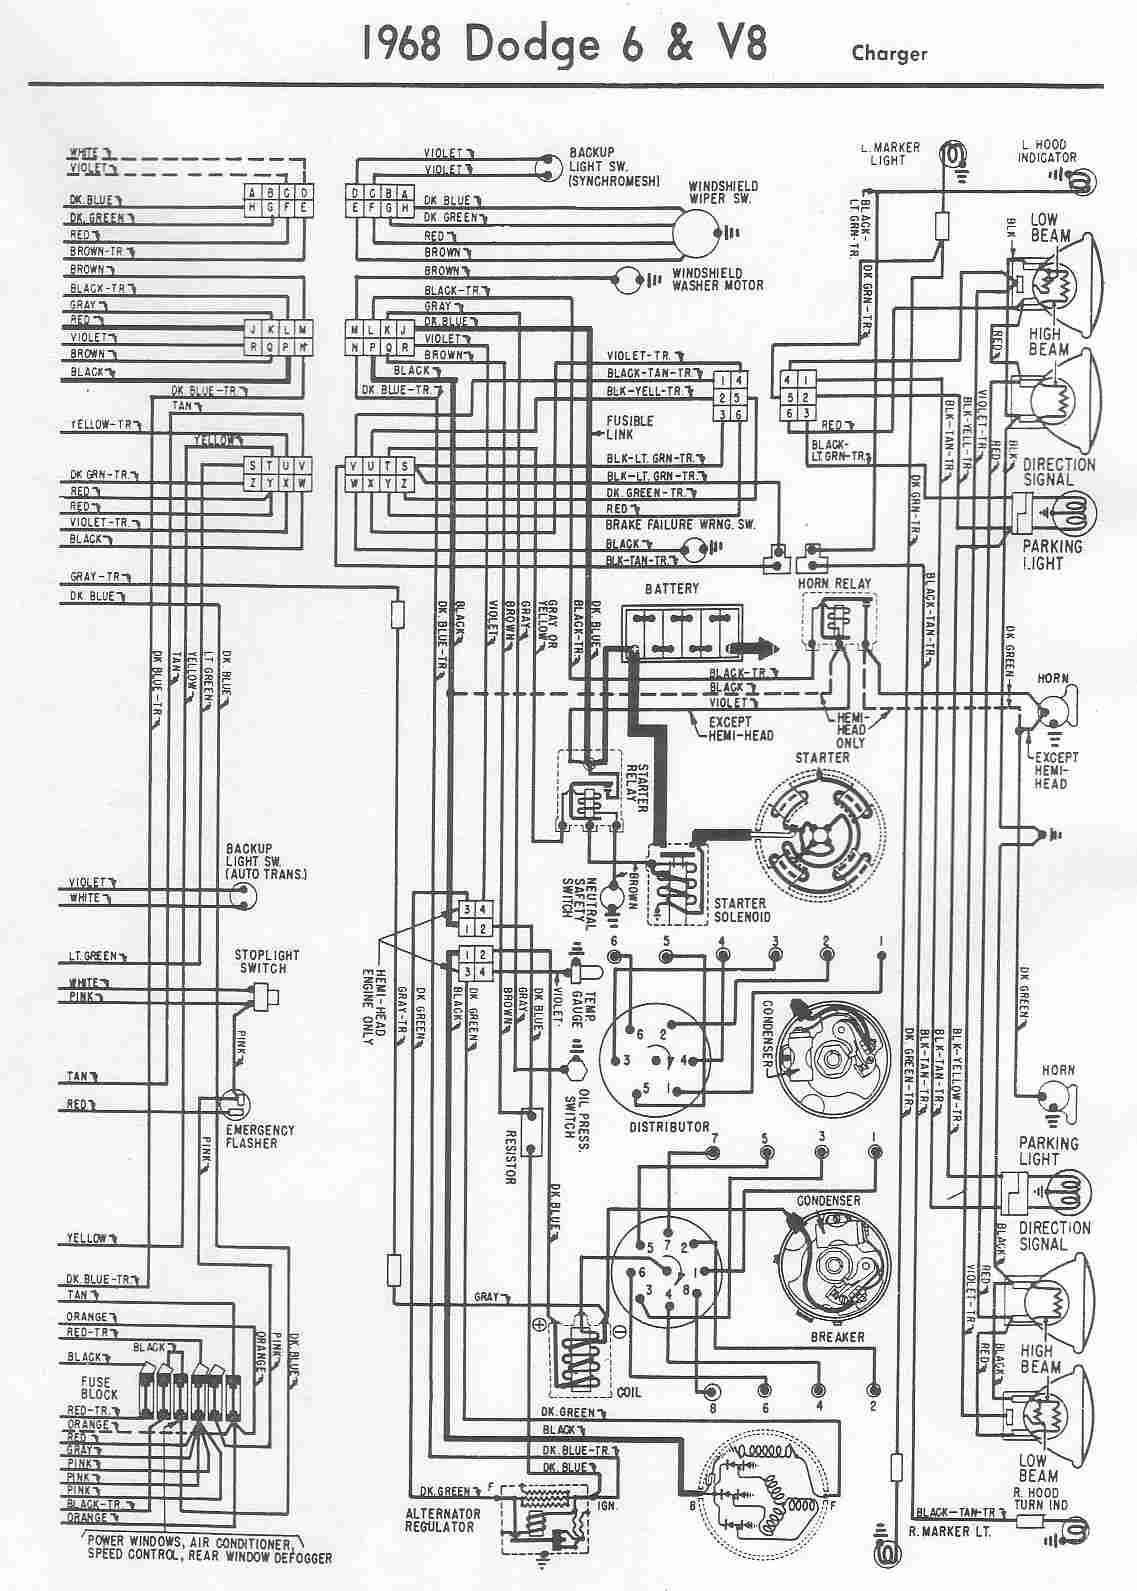 Free Download Wiring Schematics The Portal And Forum Of 70 Chevy C10 Schematic Dodge Infinity Diagram Rh 8 4 14 Jacobwinterstein Com Car Truck